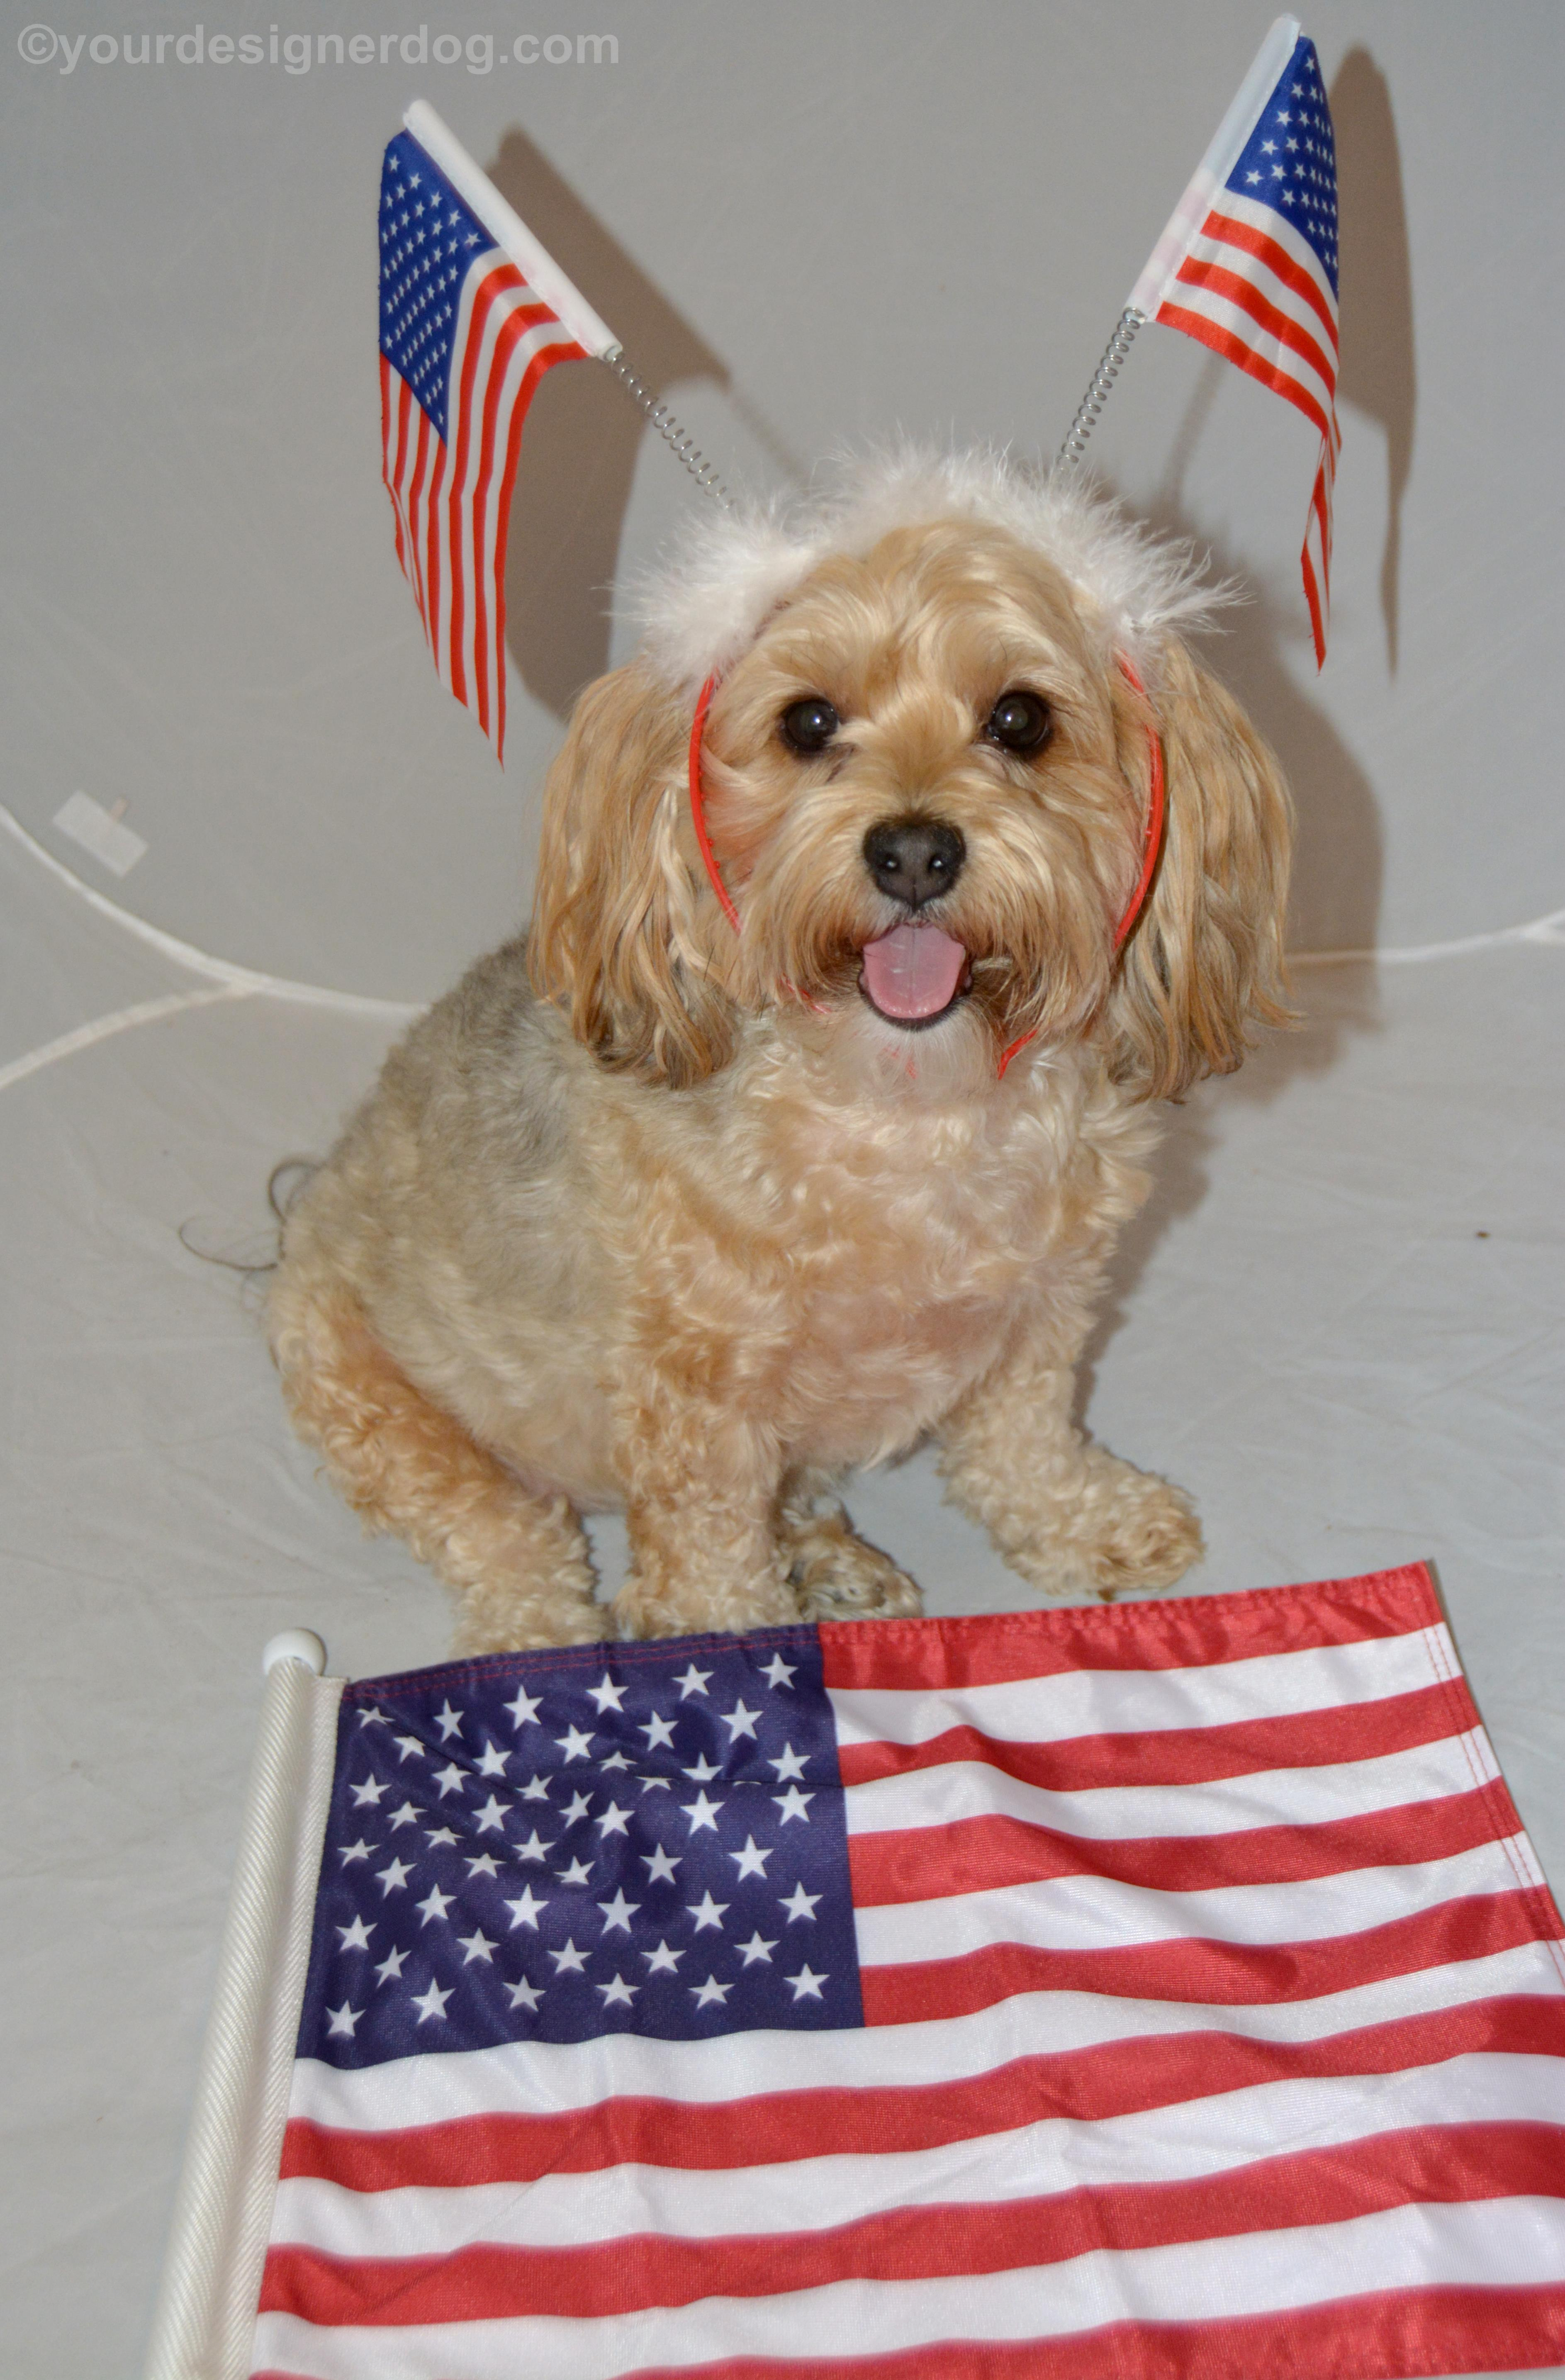 Tongue Out Tuesday – Flag Day Edition